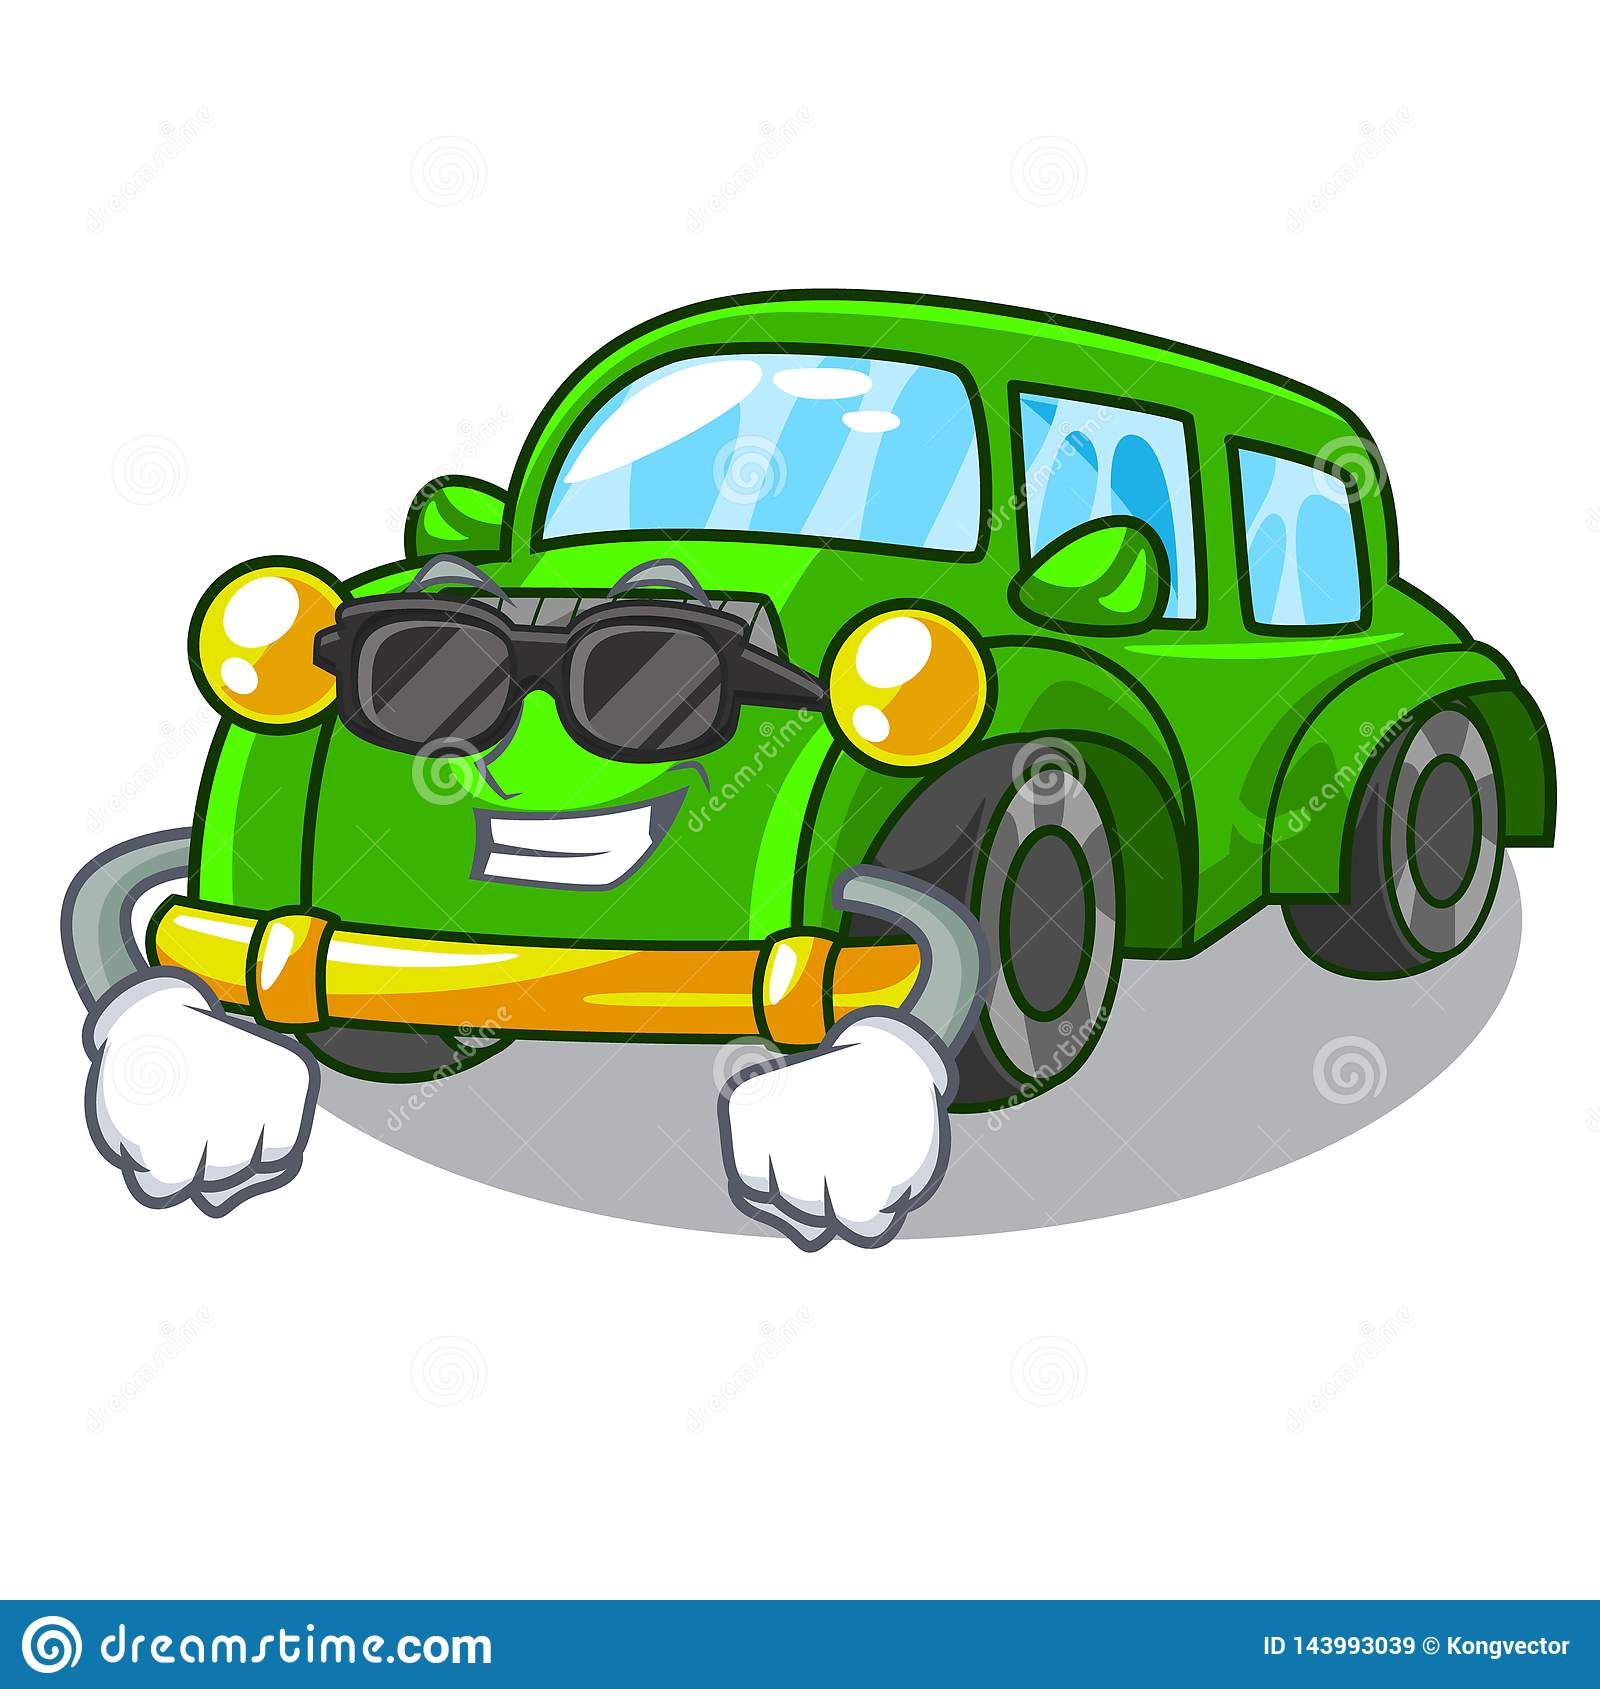 Super Cool Miniature Classic Car In Shape Characters Stock Vector Illustration Of Happy Cars 143993039